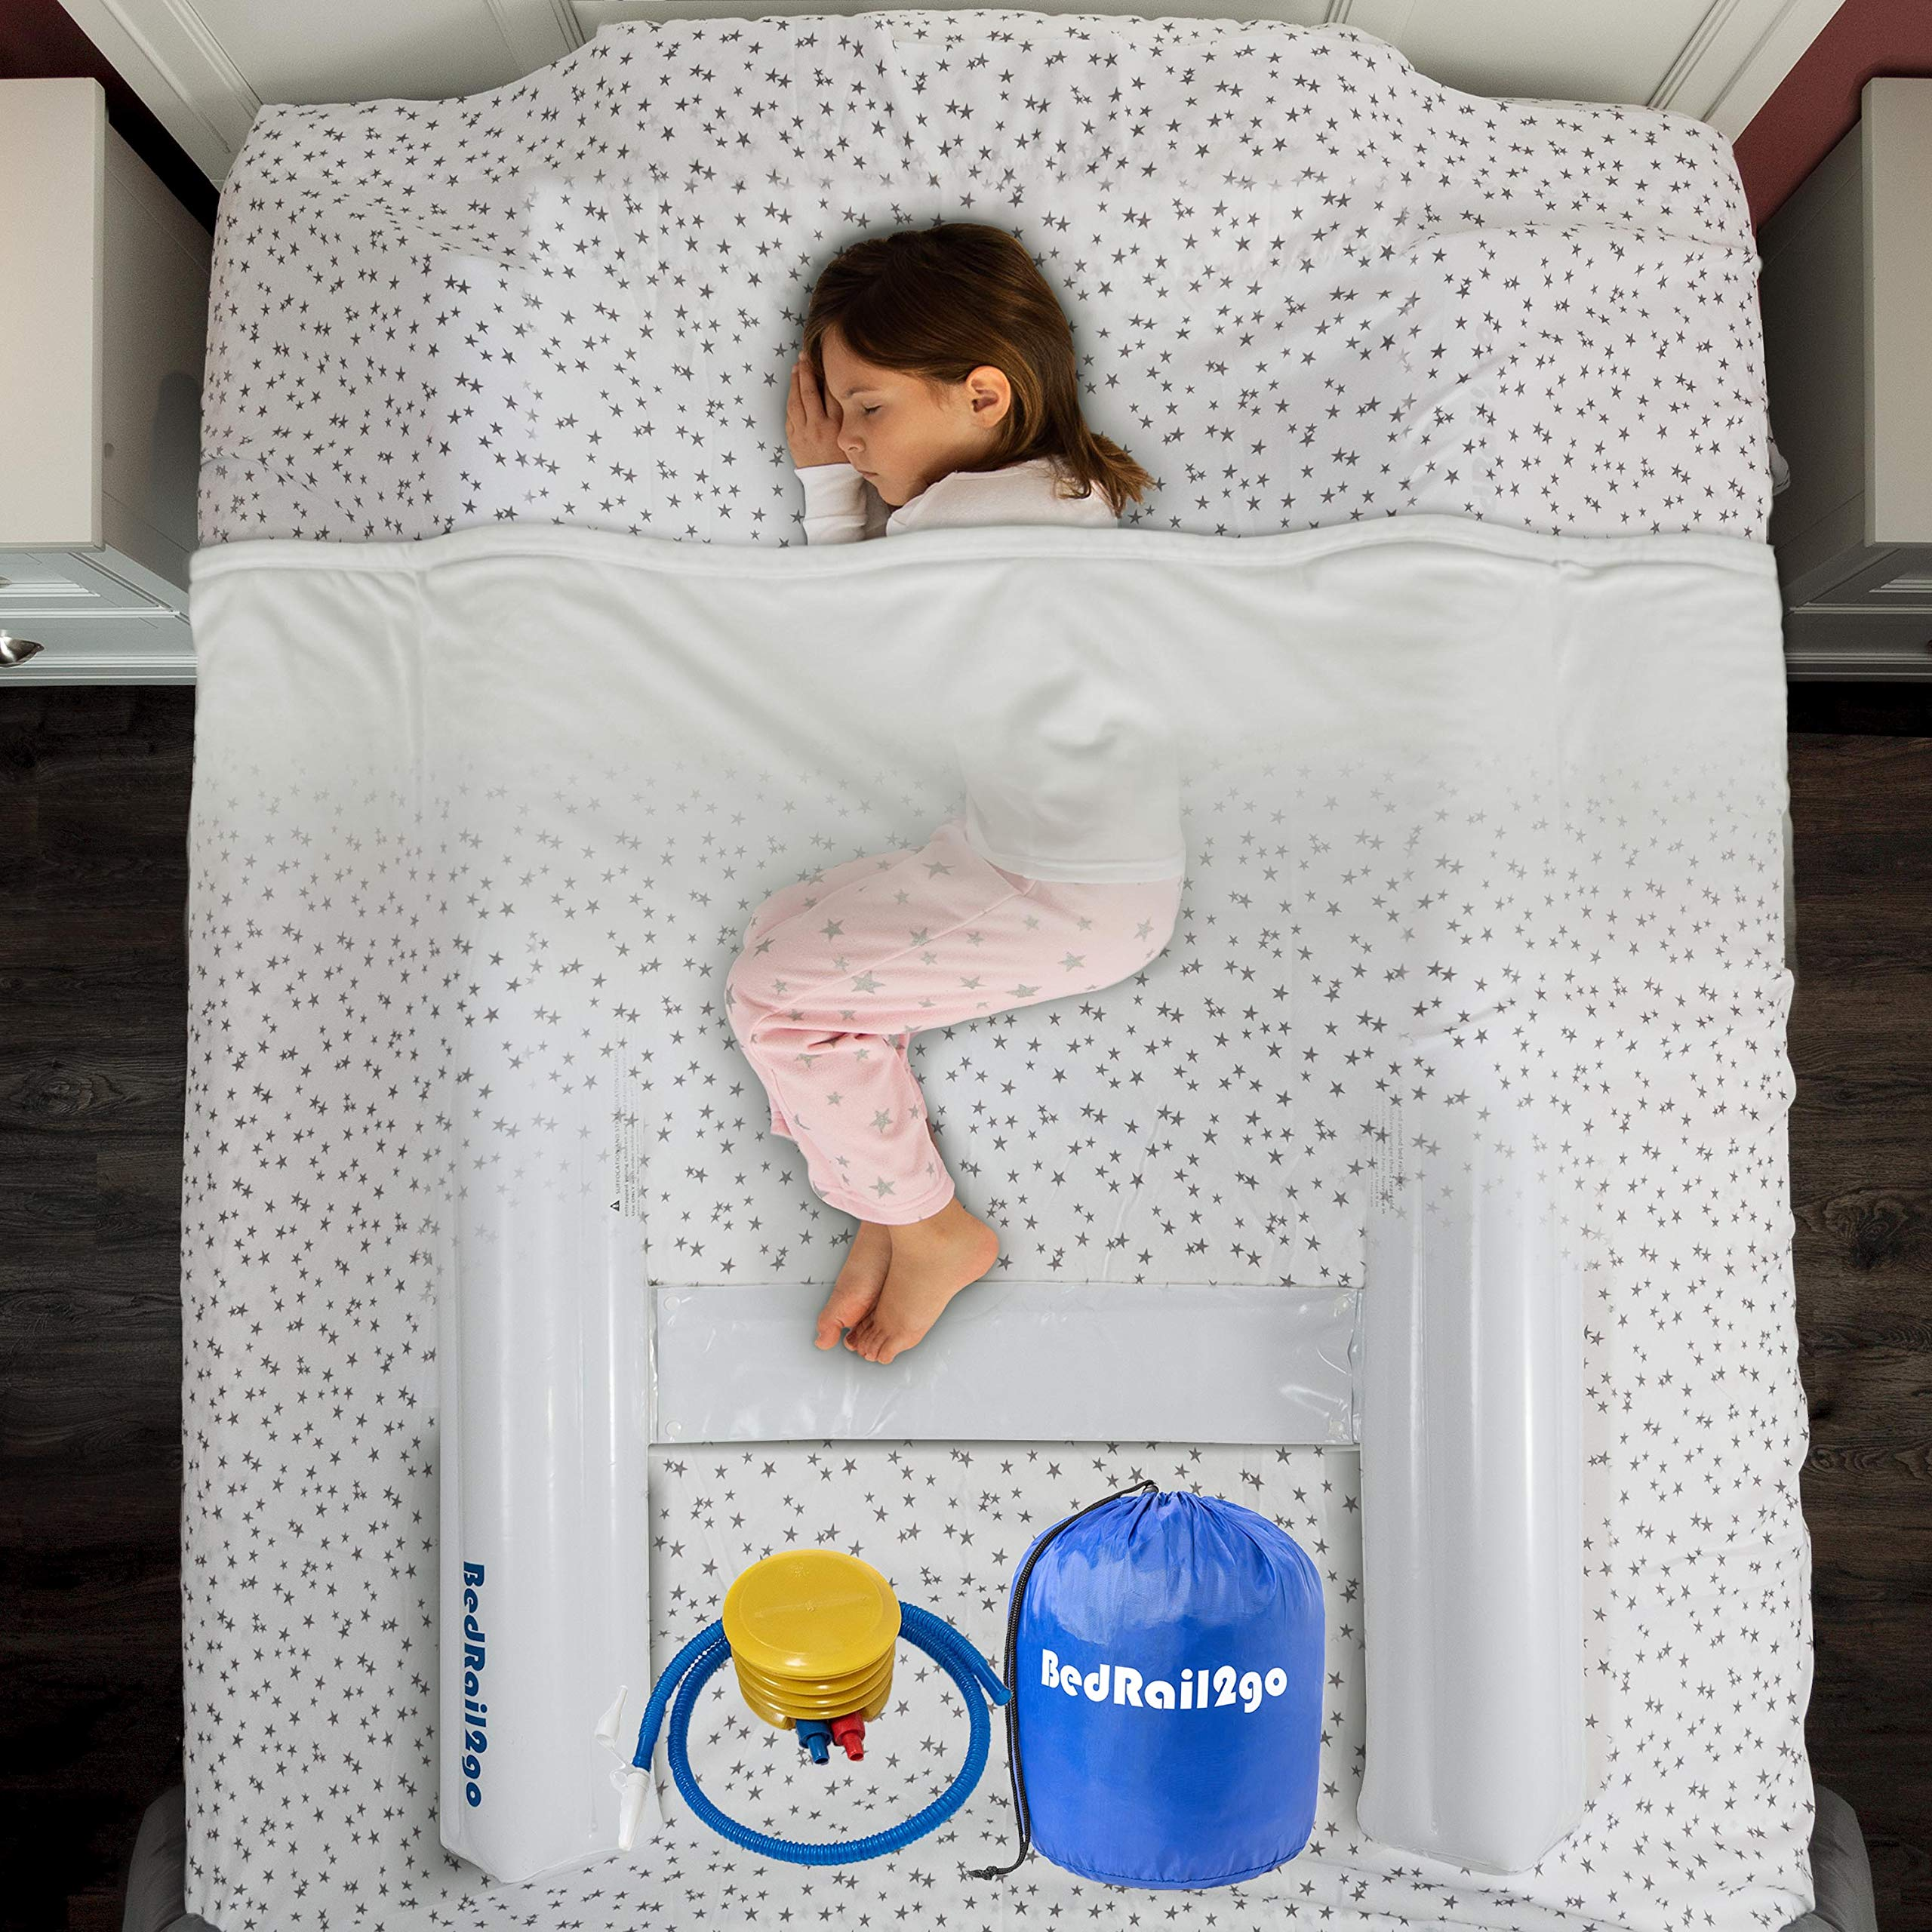 [2 Pack] Inflatable Toddler Bed Bumpers with Safety - Bed Rails Guard for Kids, Portable Baby beds Safety Side Pillow - Water Proof - White